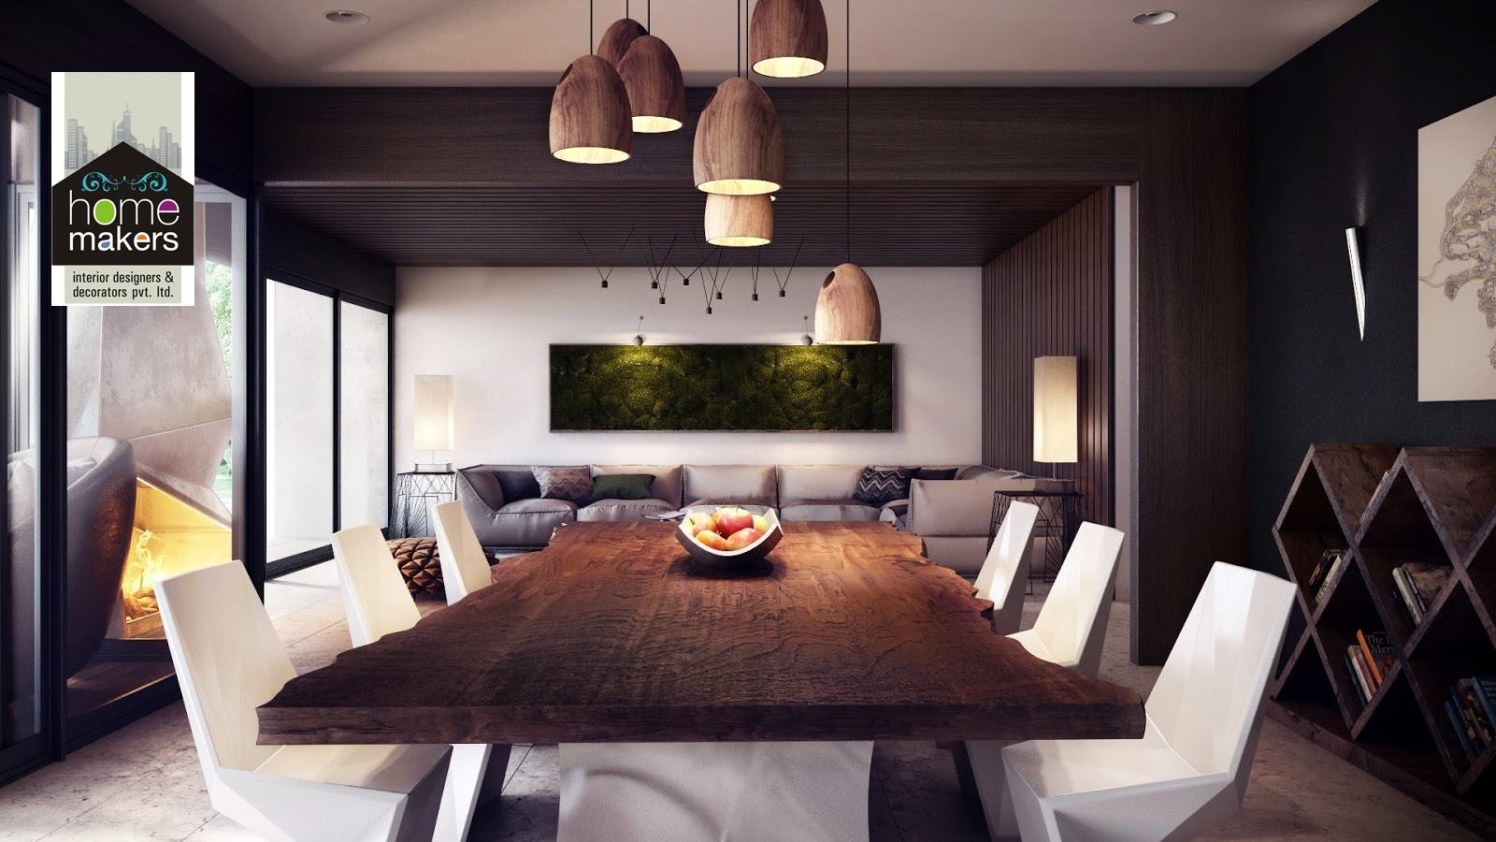 Cherry Wood And Black Dining Room With White Chair by Shishu Yadava Dining-room Modern | Interior Design Photos & Ideas